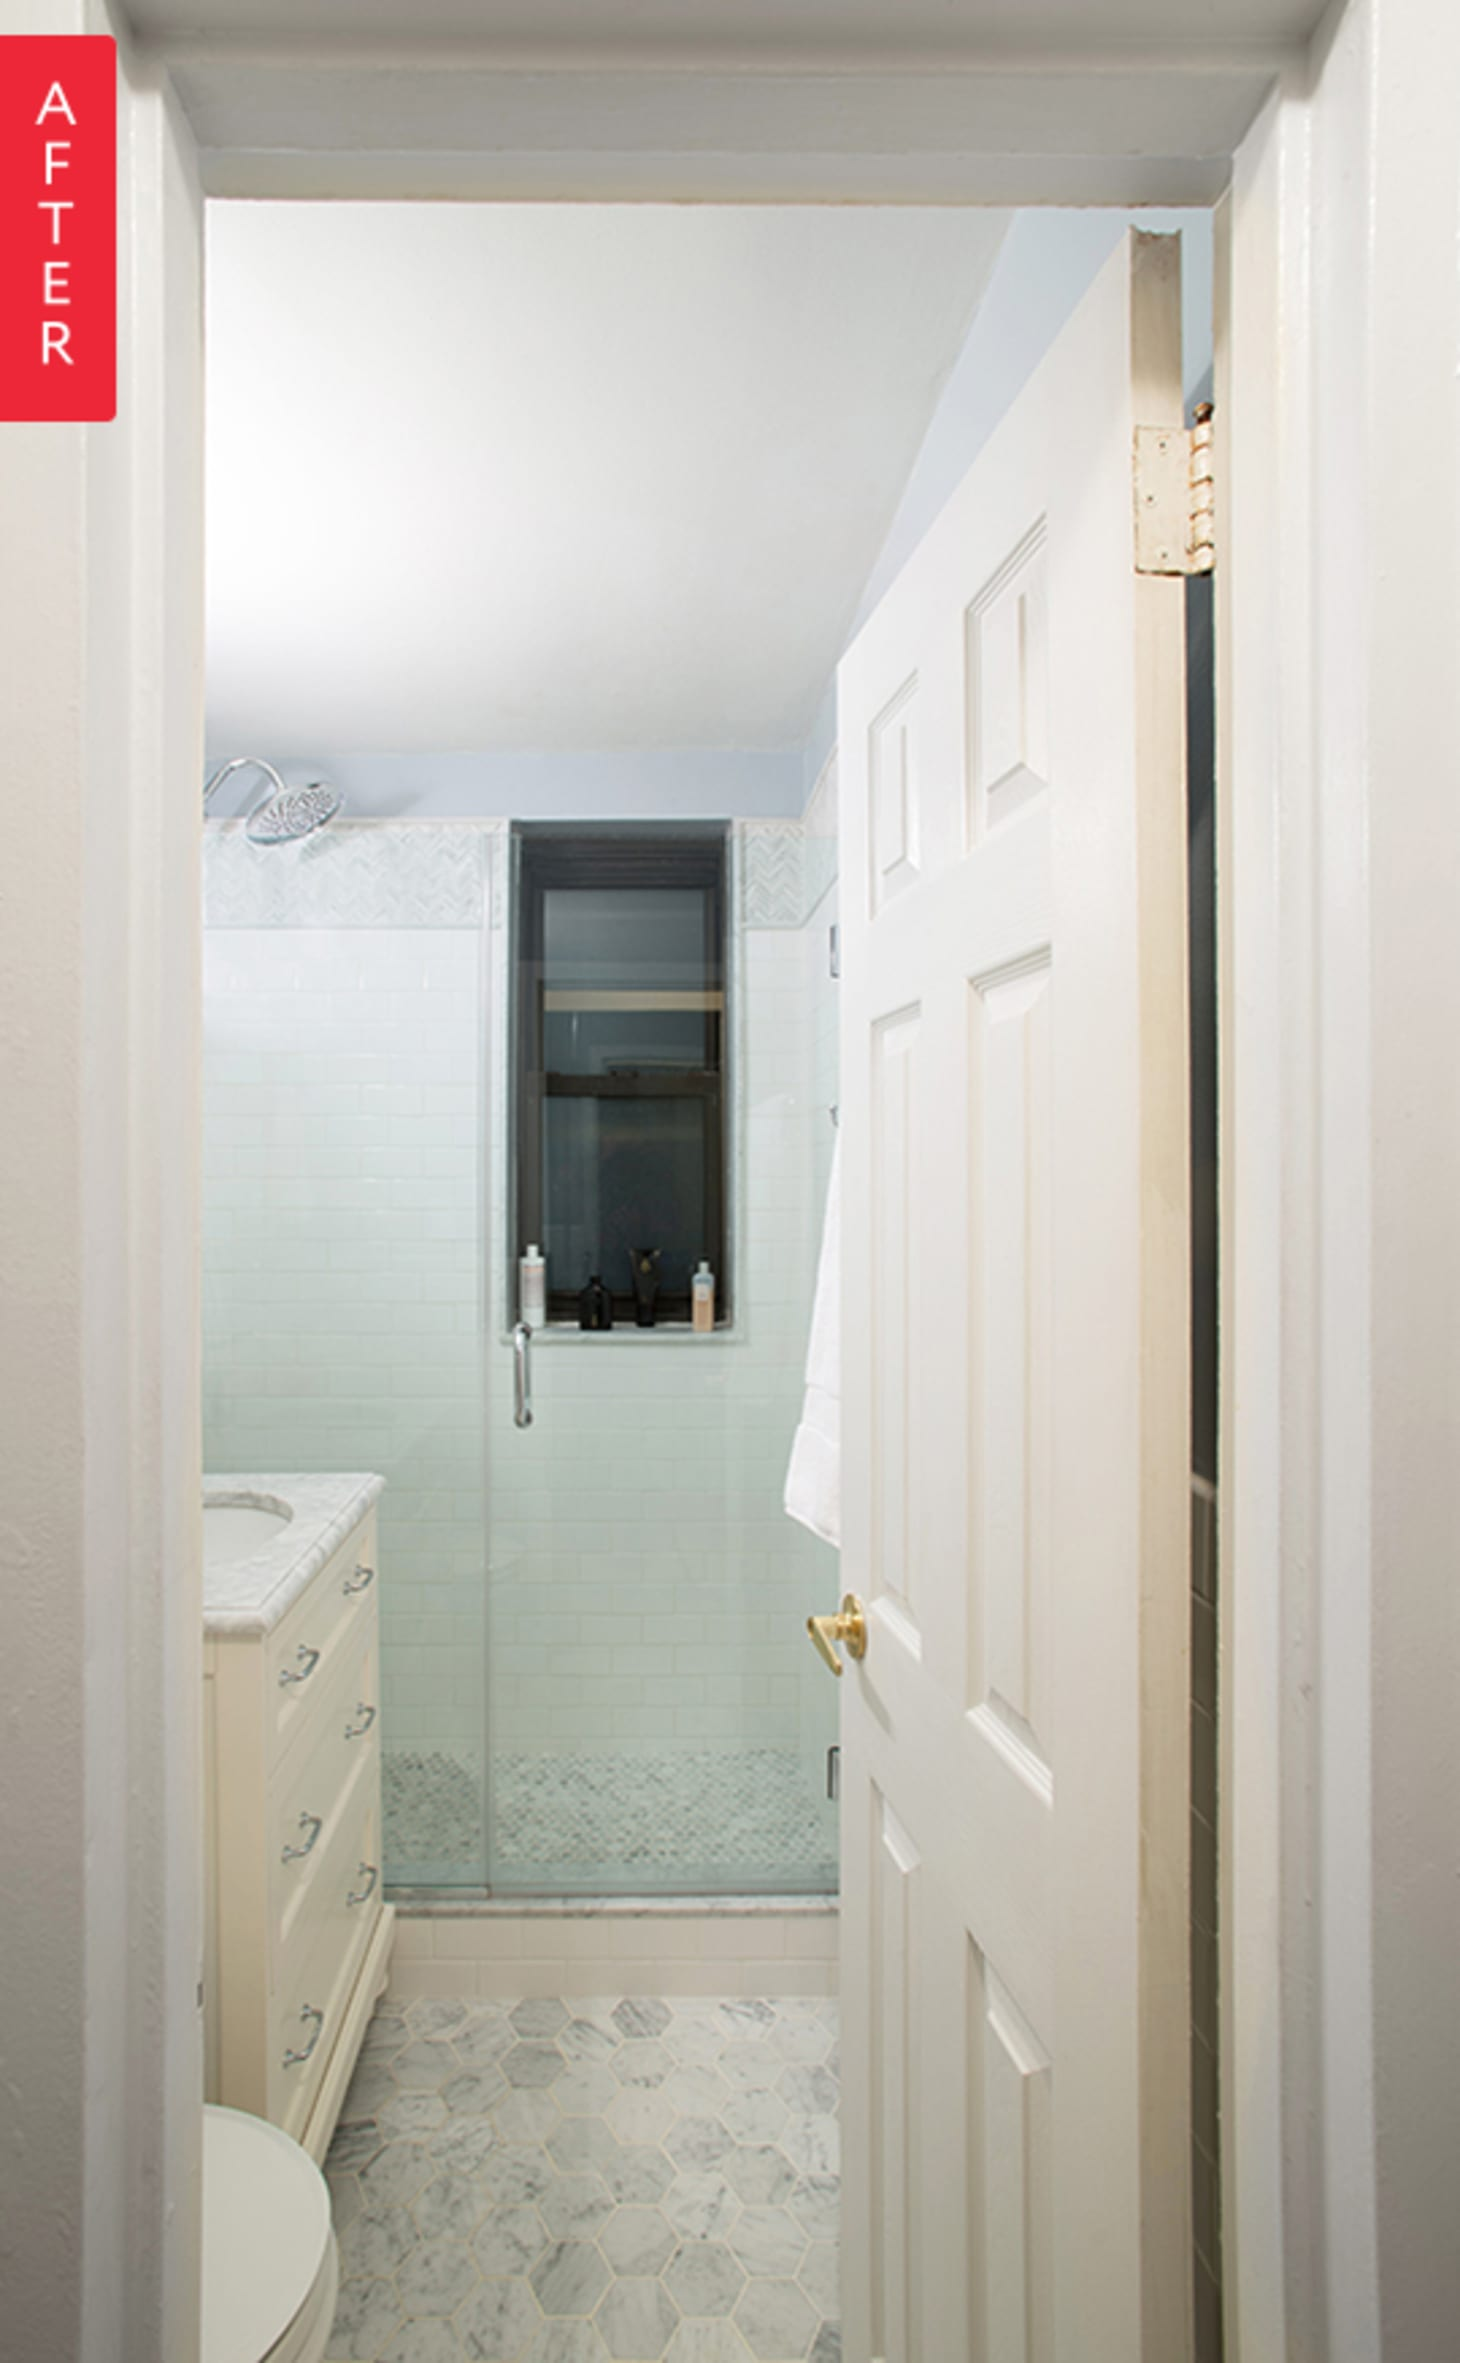 Before Amp After An Upper East Side Bathroom Transformation Apartment Therapy